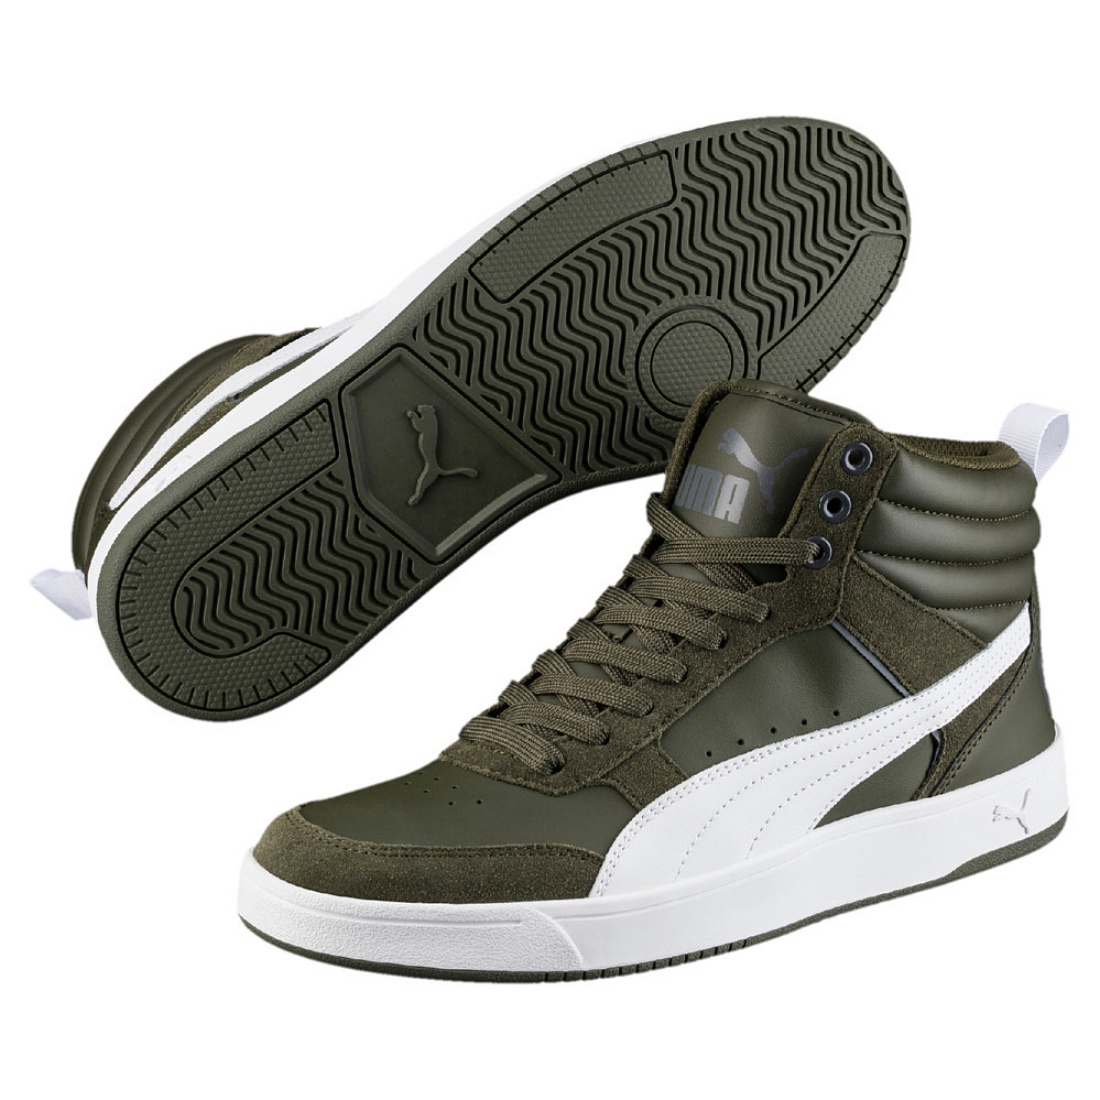 Details about Puma Rebound Street v2 mid Shoes Trainers 363715 mid Cut  Forest Night 292685e9f1b0b